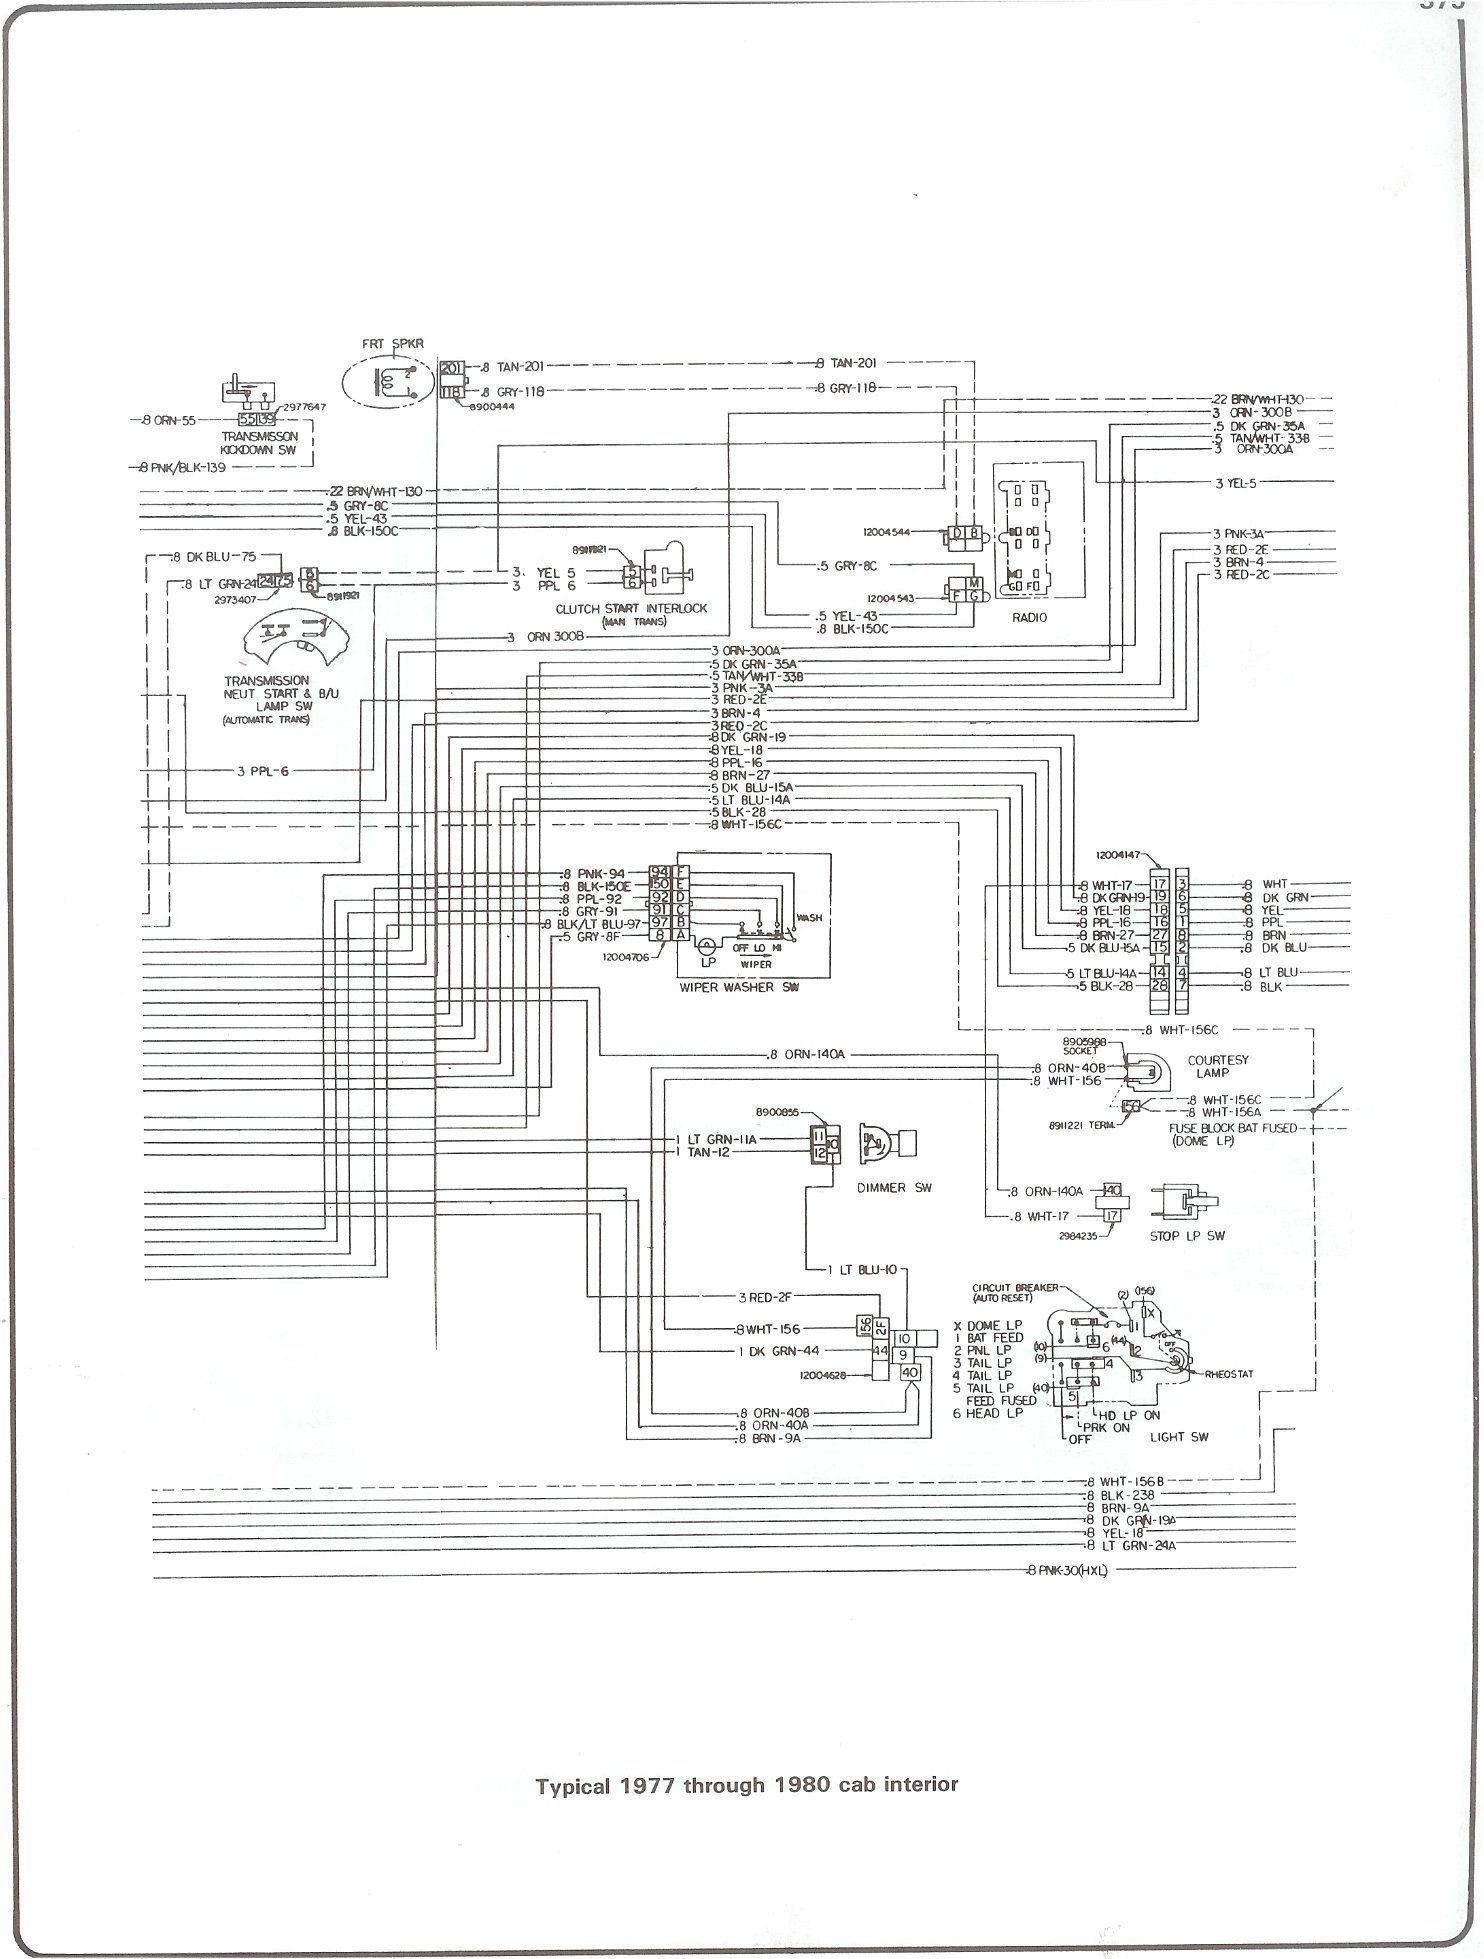 77 80_cab_inter complete 73 87 wiring diagrams wiring diagram for 1984 chevy c10 at bakdesigns.co